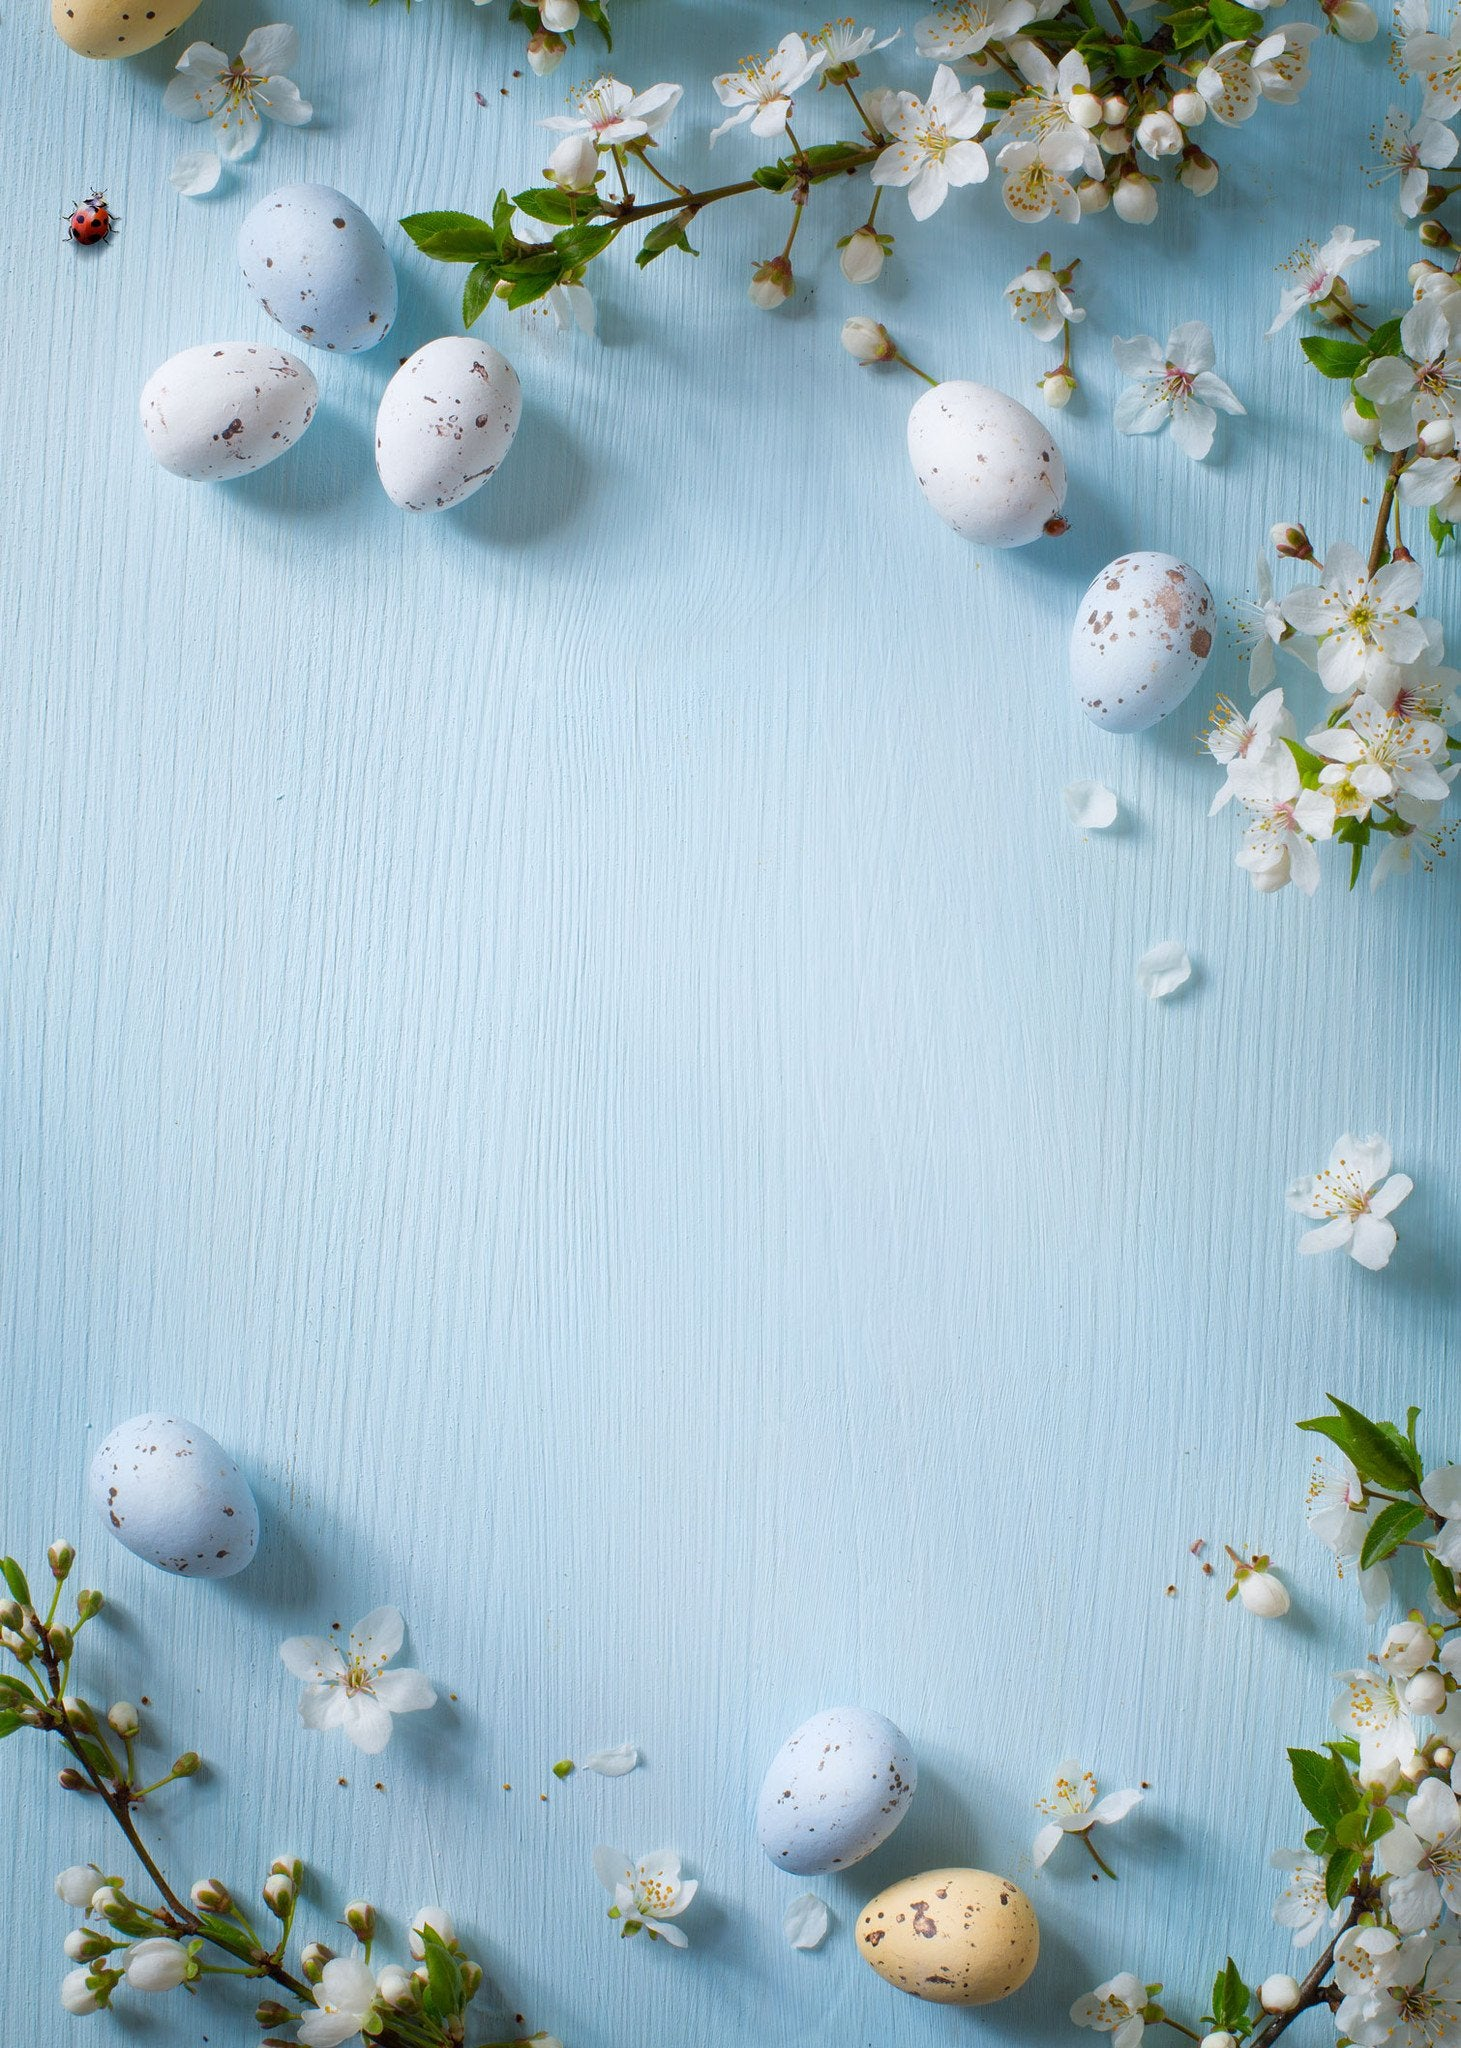 Load image into Gallery viewer, Katebackdrop£ºKate Easter Blue Wall Colorful Eggs Photography Backdrops